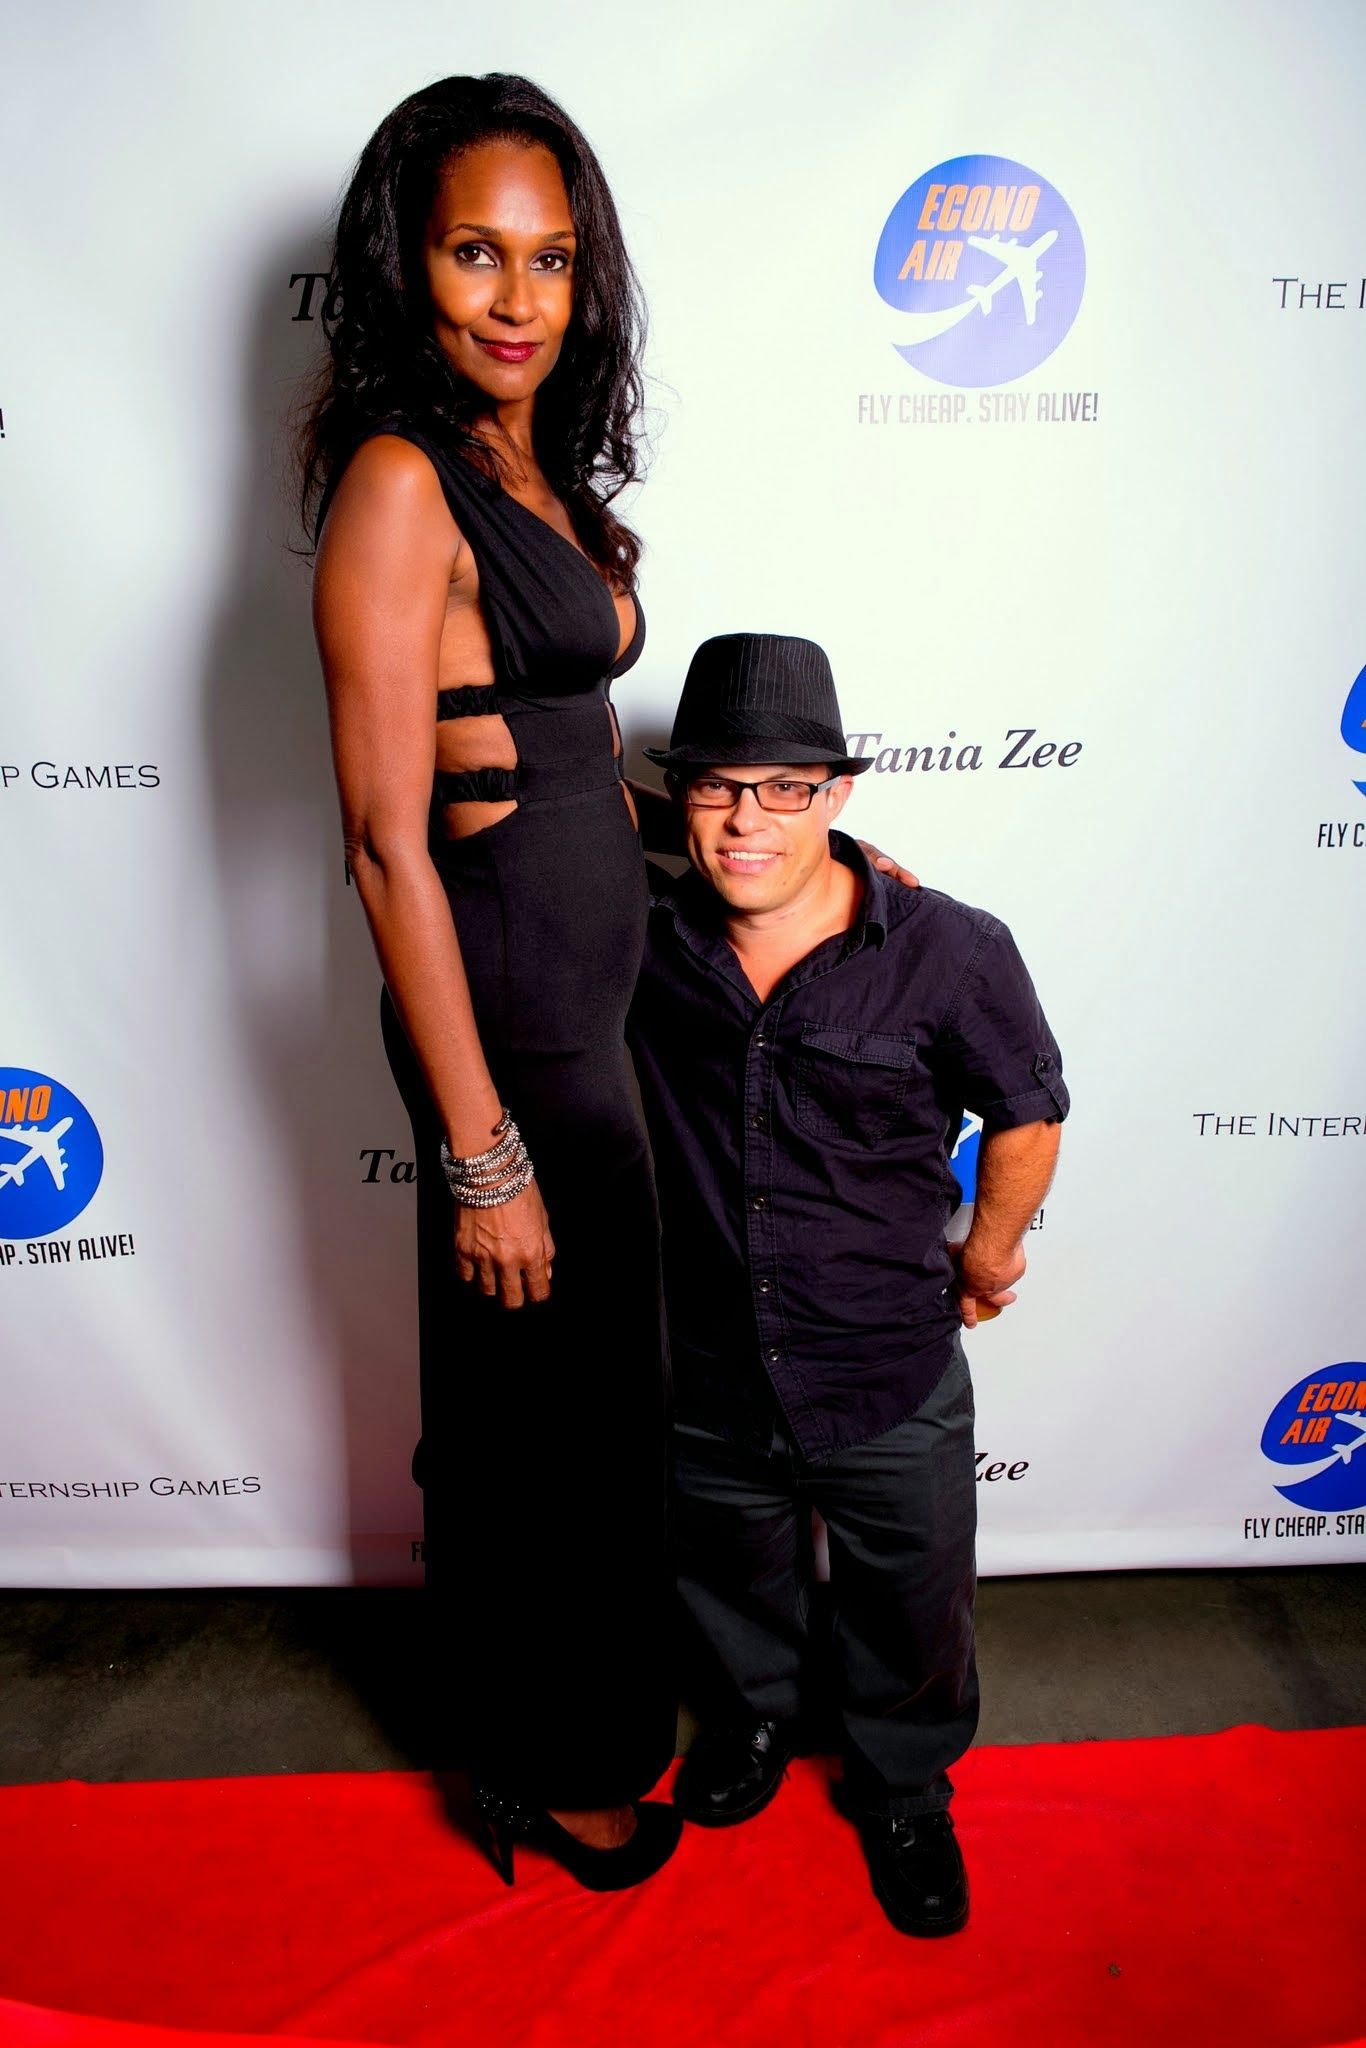 showing 3rd image of How Tall Are Amanda And Andrea Salinas Pin by Ramon Otero on MIDGETS SMALL PEOPLE | Little people ...